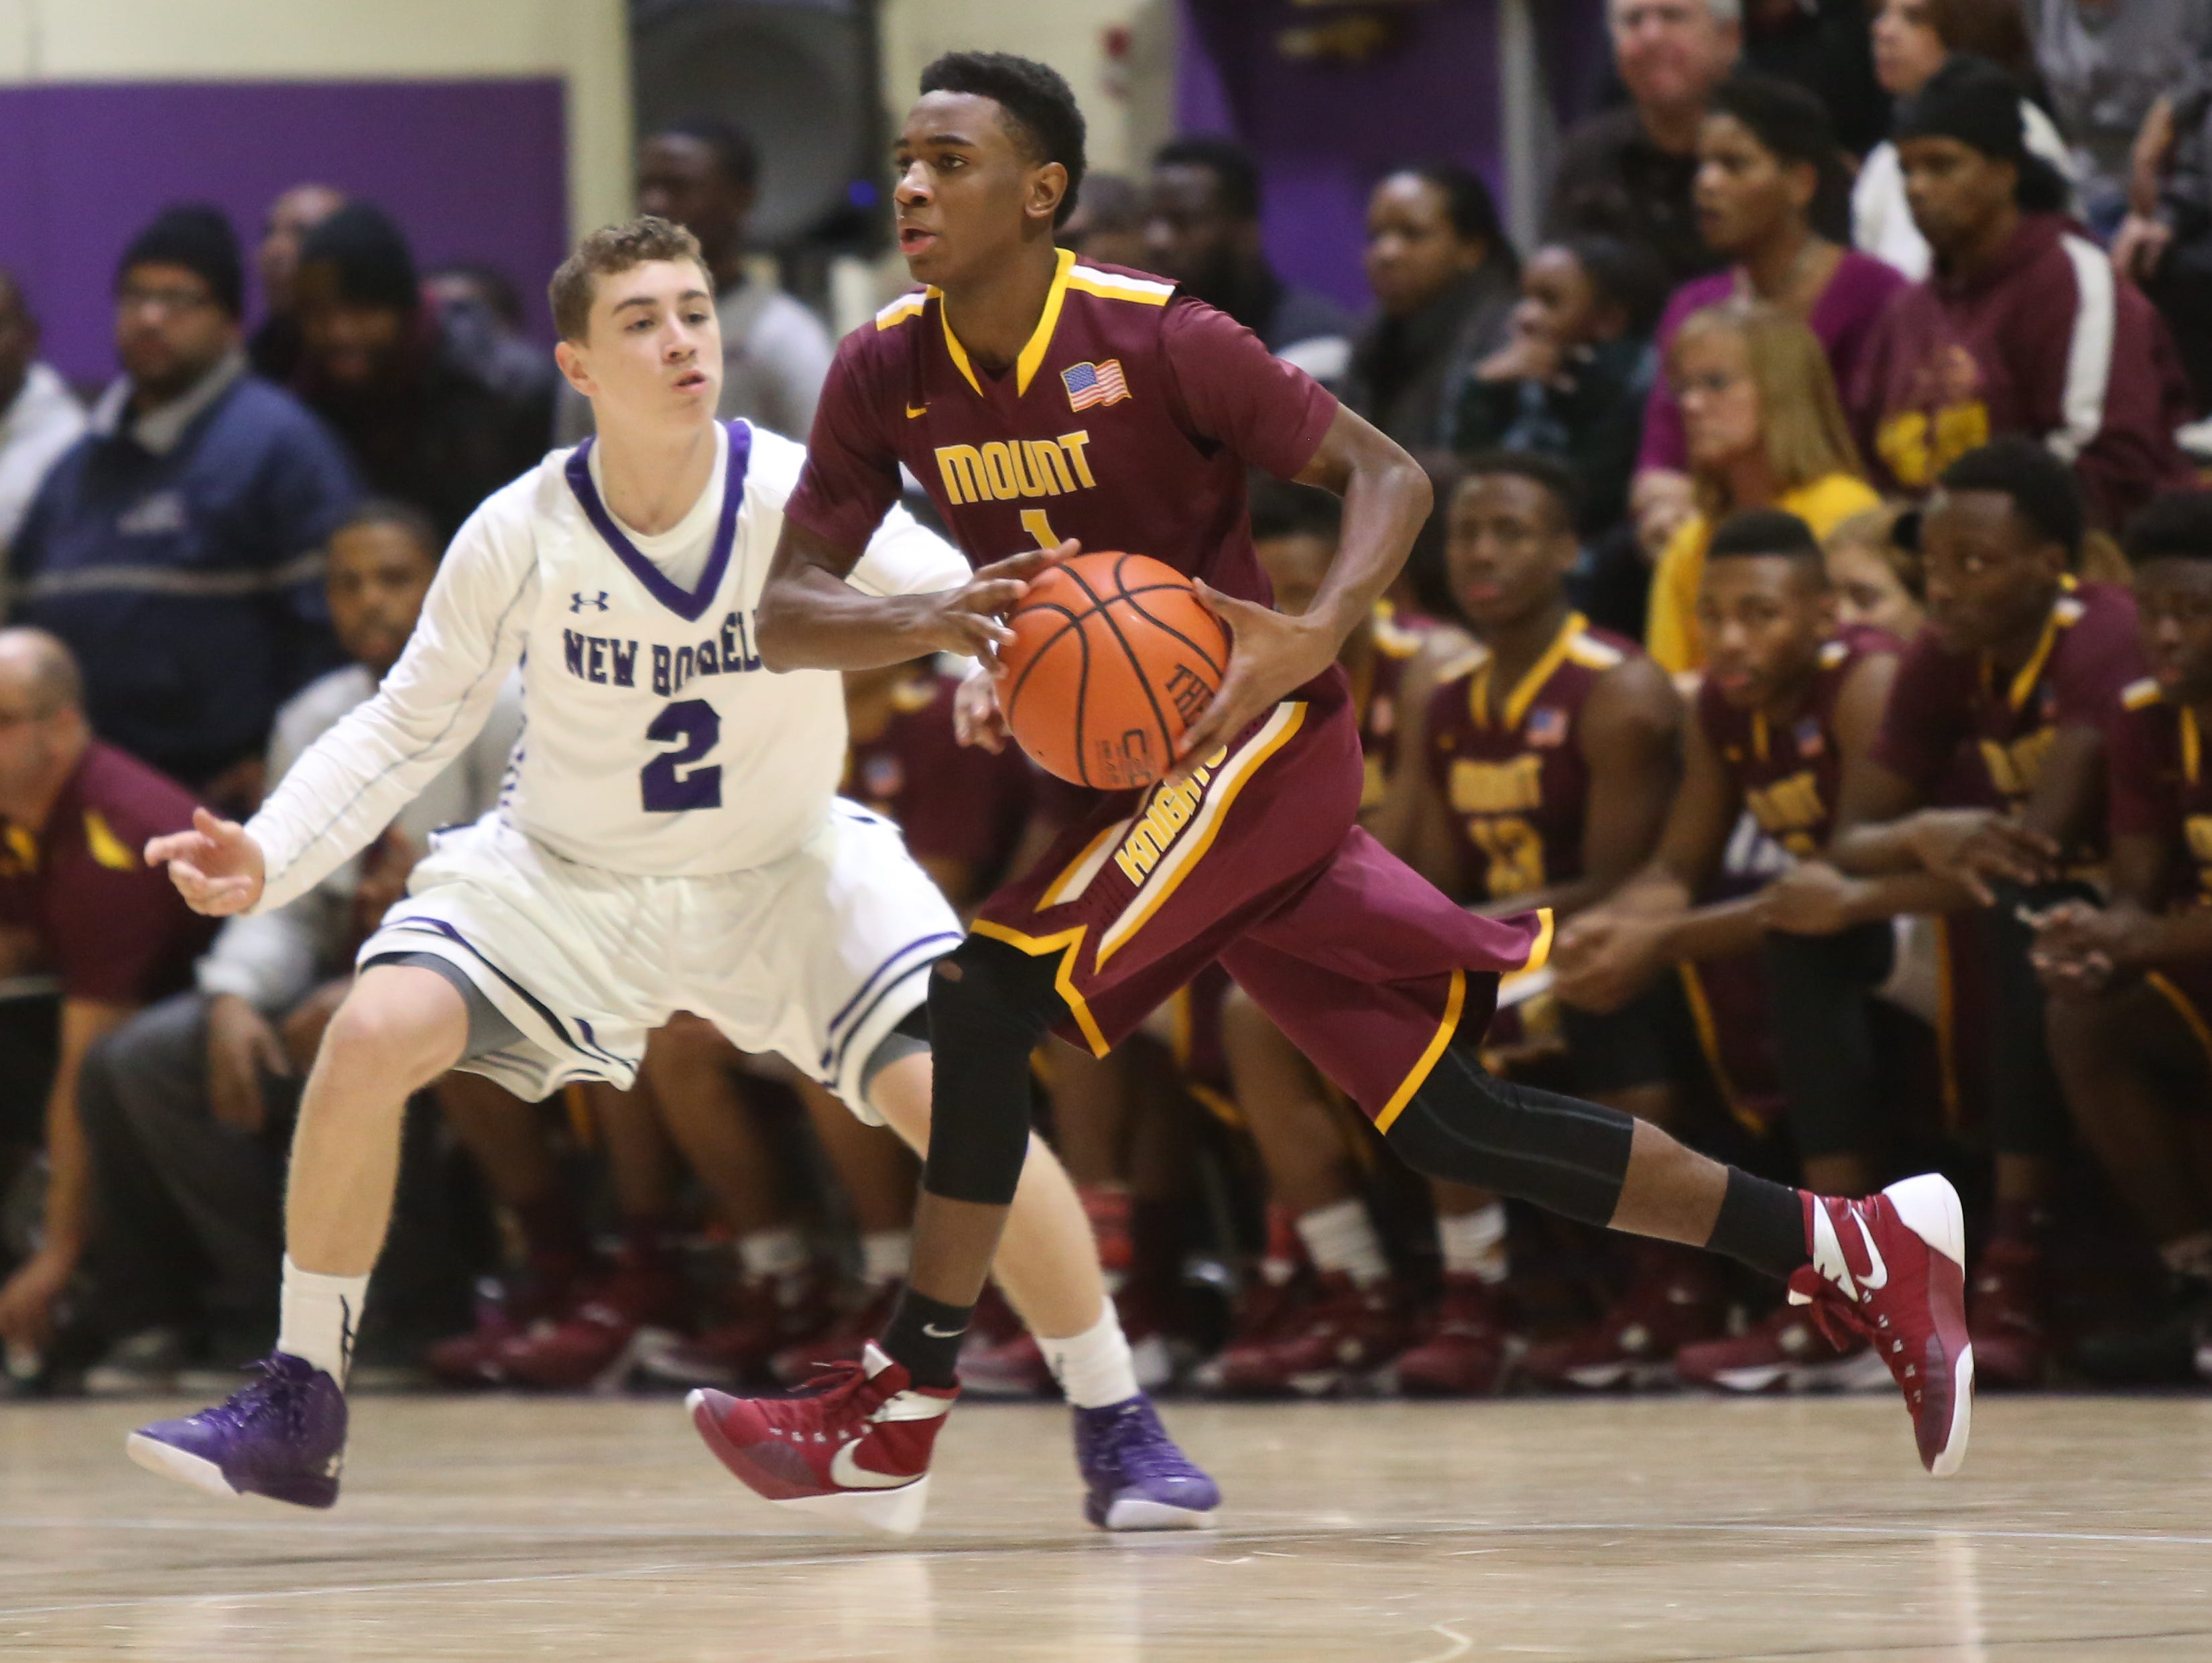 Jared Young (1) of Mount Vernon dribbles pass Jake Mieto (2) of New Rochelle during game action at New Rochelle High School on Jan 4, 2016. Mount Vernon defeated New Rochelle 72-63.